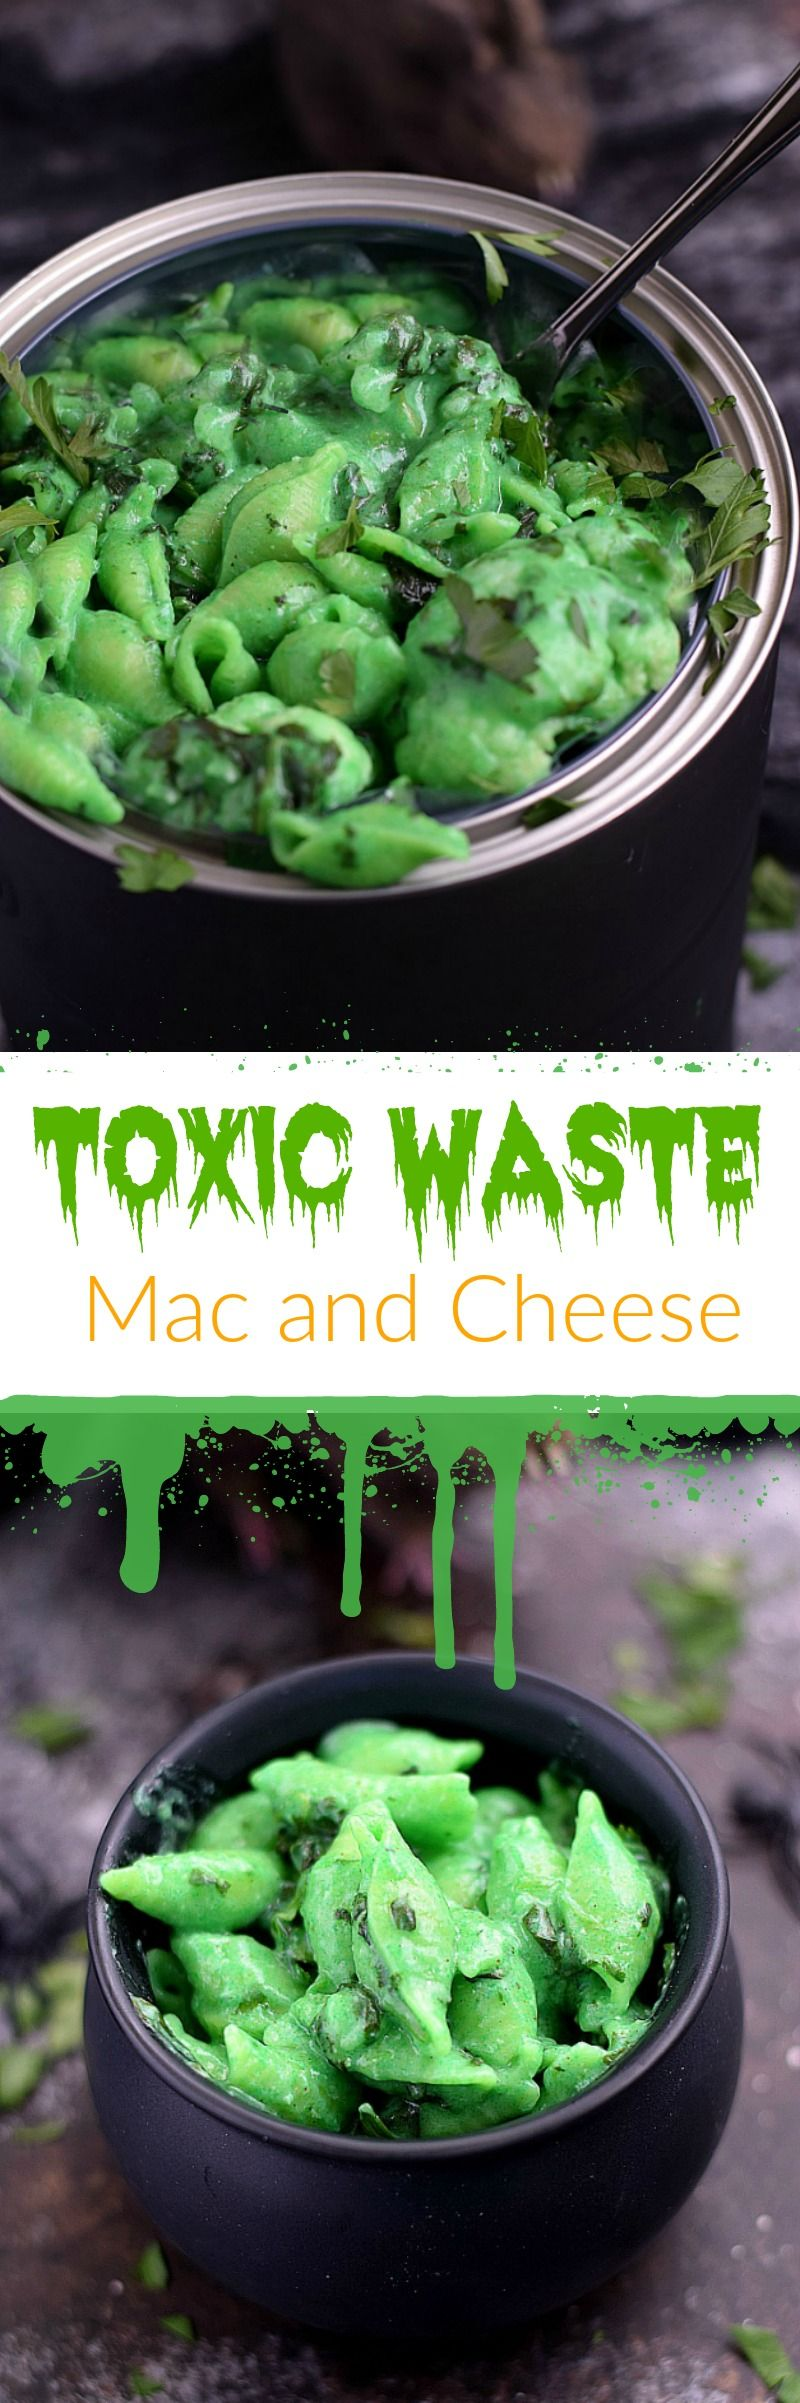 Toxic Waste Mac and Cheese | Recipe | Macs and Cheese